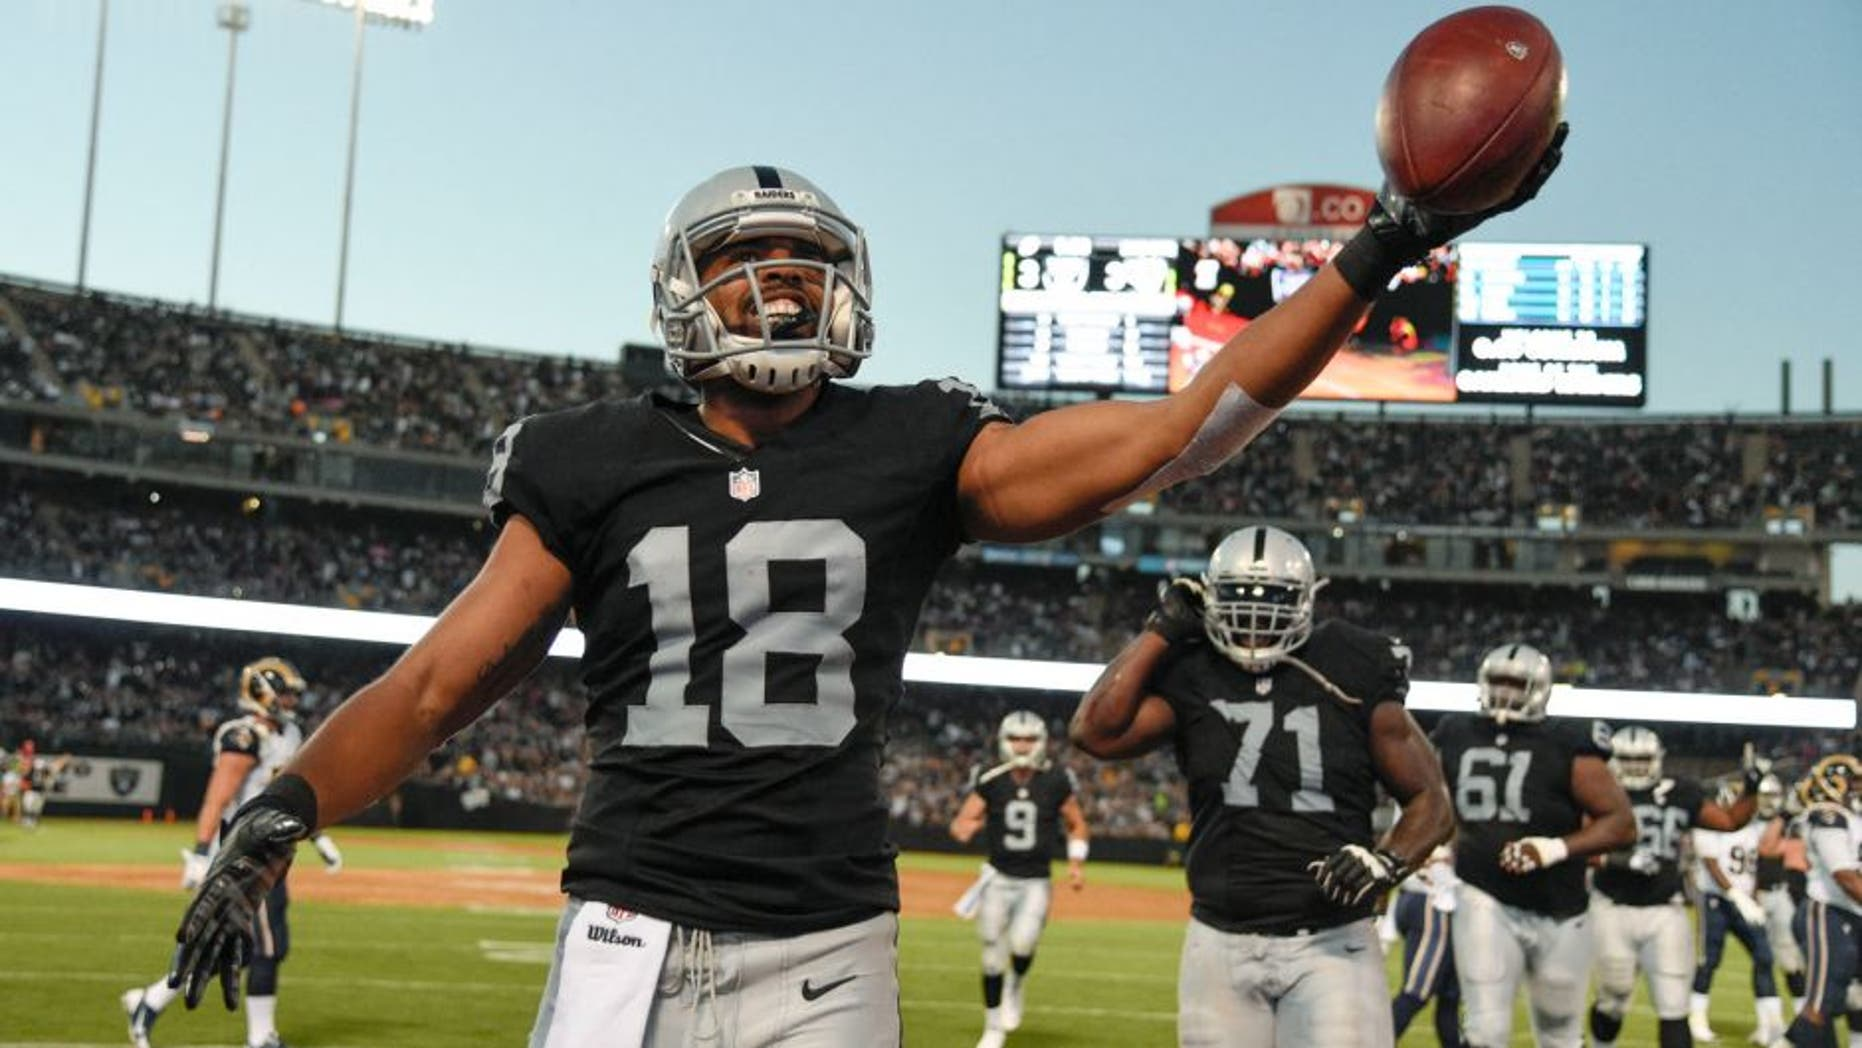 August 14, 2015; Oakland, CA, USA; Oakland Raiders wide receiver Andre Holmes (18) celebrates after scoring a touchdown against the St. Louis Rams during the second quarter in a preseason NFL football game at O.co Coliseum. Mandatory Credit: Kyle Terada-USA TODAY Sports